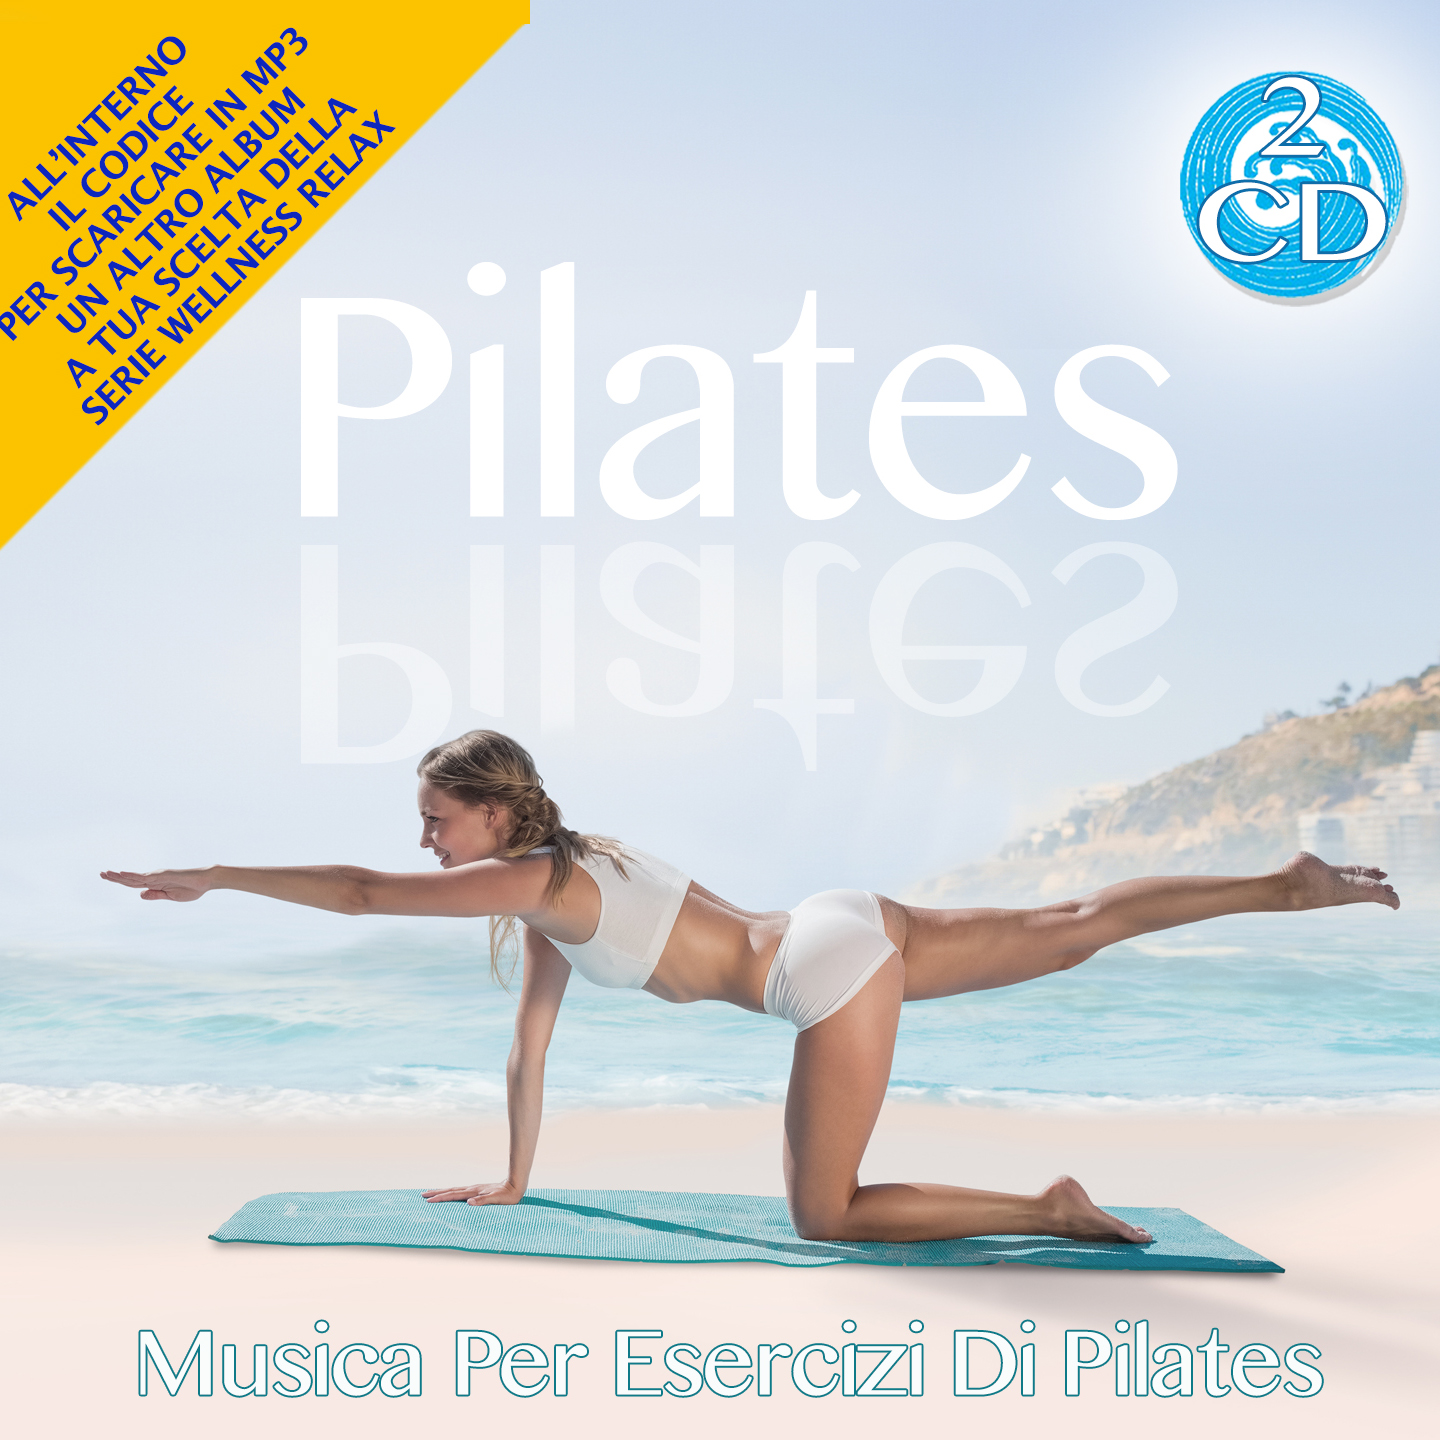 4 - Pilates: Music for Pilates Workout